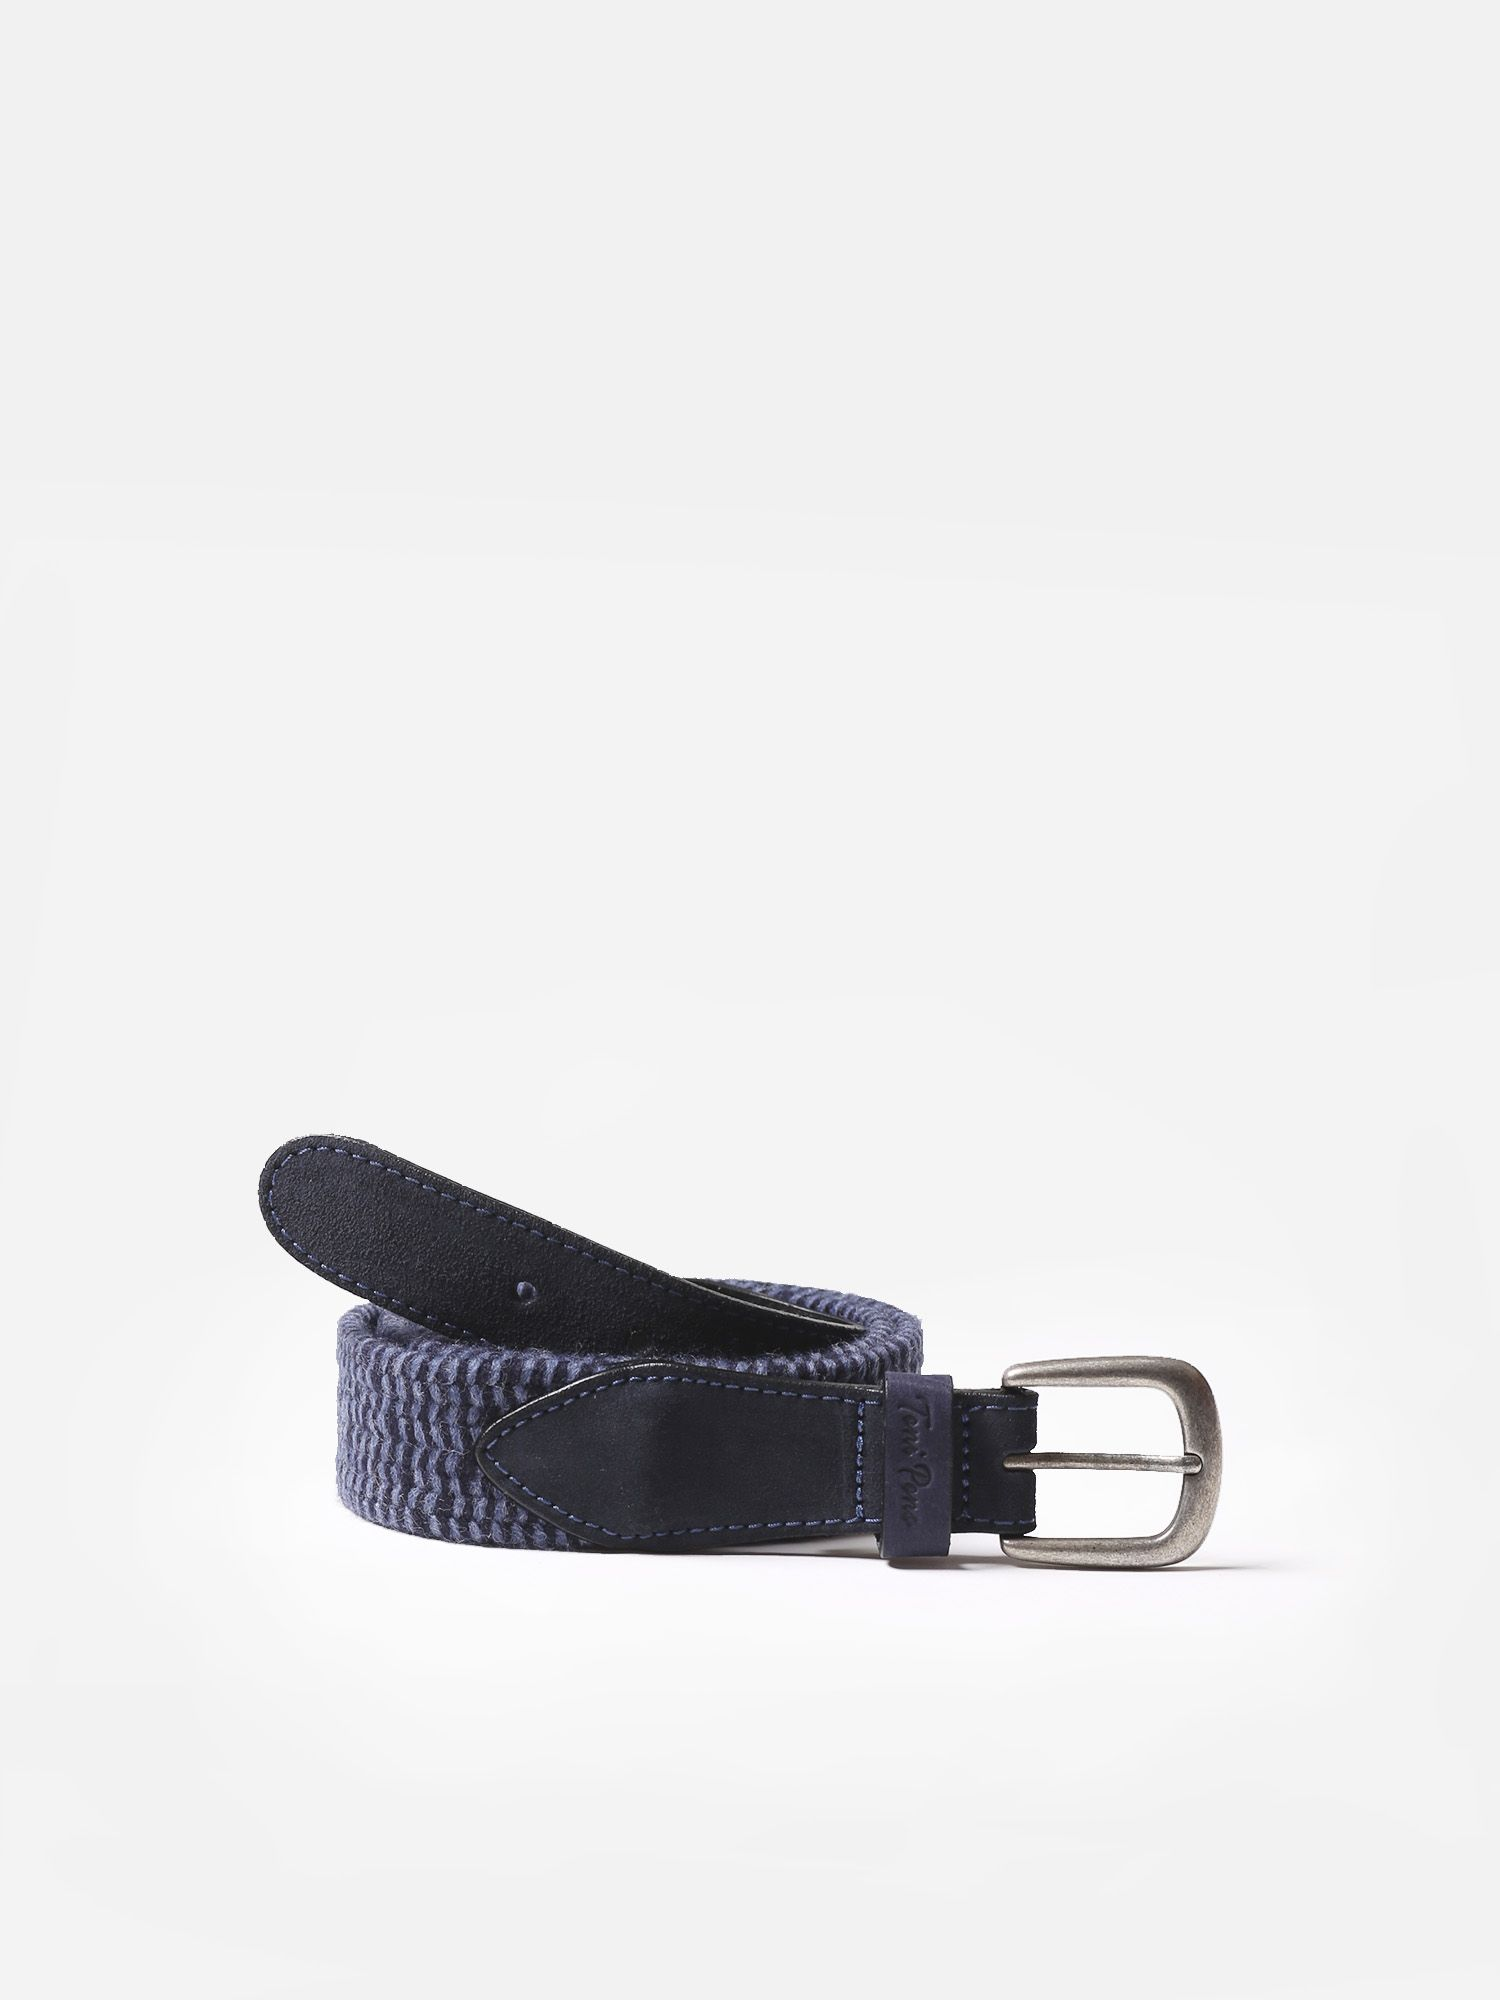 Accessories for men, belt made of leather and fabric - ELVIS